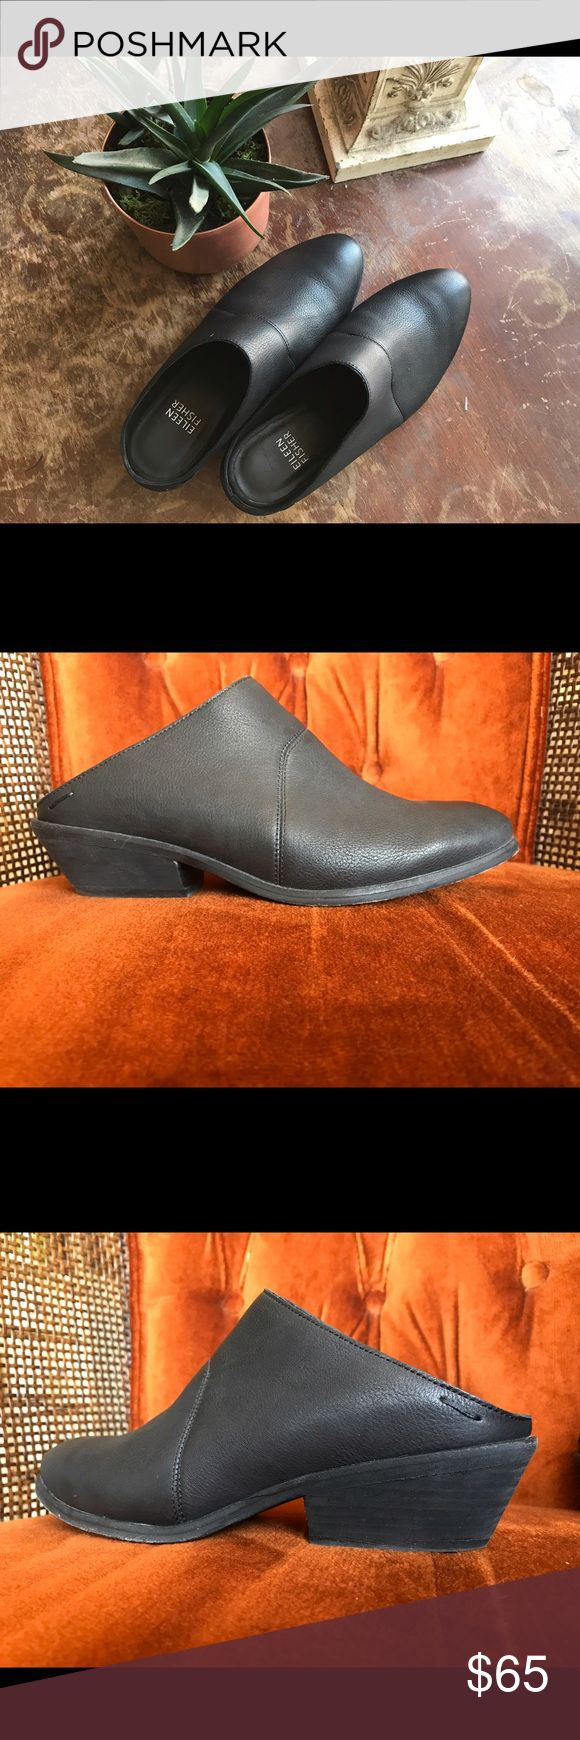 "Eileen Fisher Vachetta Leather Mules Clean, classic lines define an almond toe mule cast in finely grained leather to provide a polished finish for your everyday style. 1.5"" heel. Leather upper, lining, and sole. Excellent used condition! No noticeable signs of wear on the exterior. Trendy and stylish- can be worn with just about anything! Eileen Fisher Shoes Mules & Clogs"